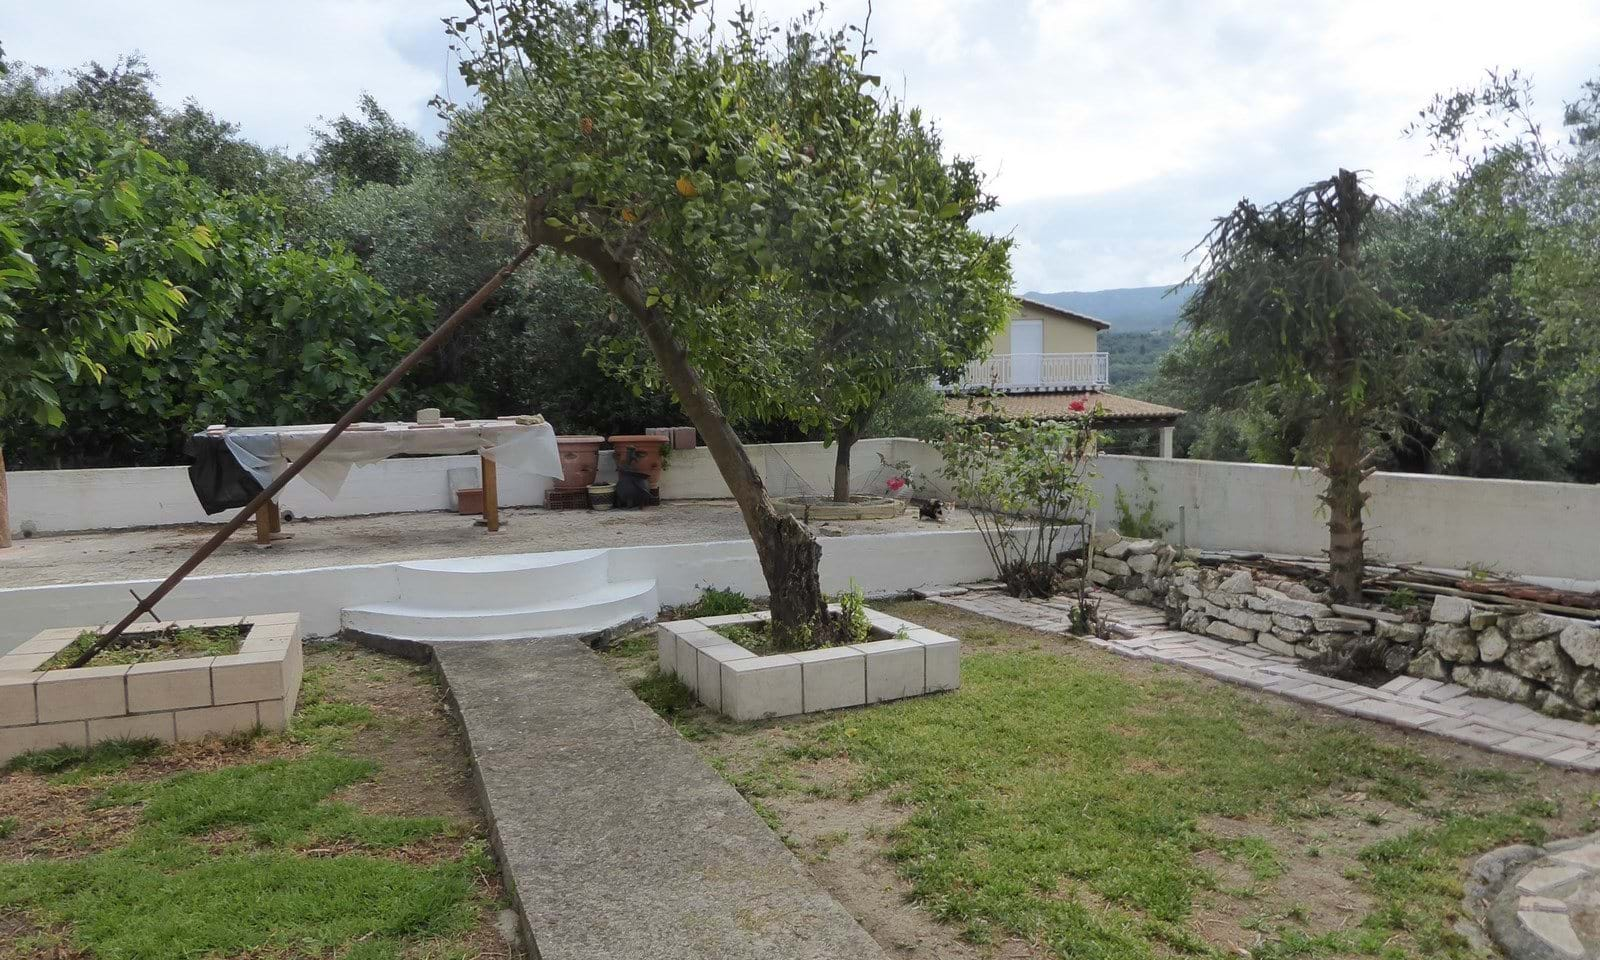 Drosato property for sale in Corfu